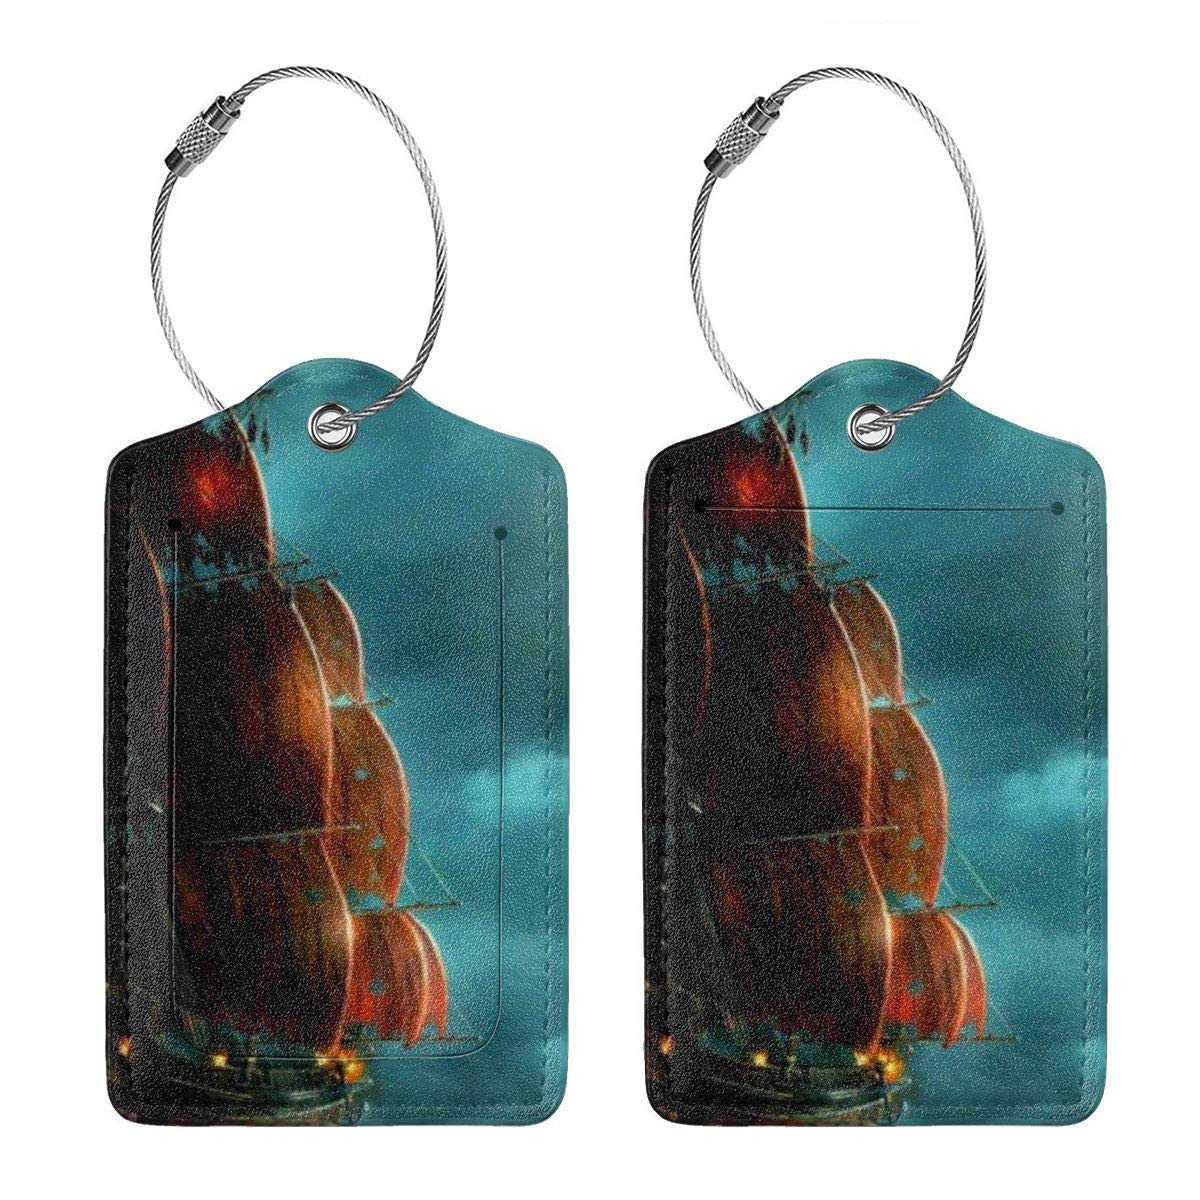 Leather Luggage Tag Fantasy Sailing Boat Ship Luggage Tags For Suitcase Travel Lover Gifts For Men Women 4 PCS